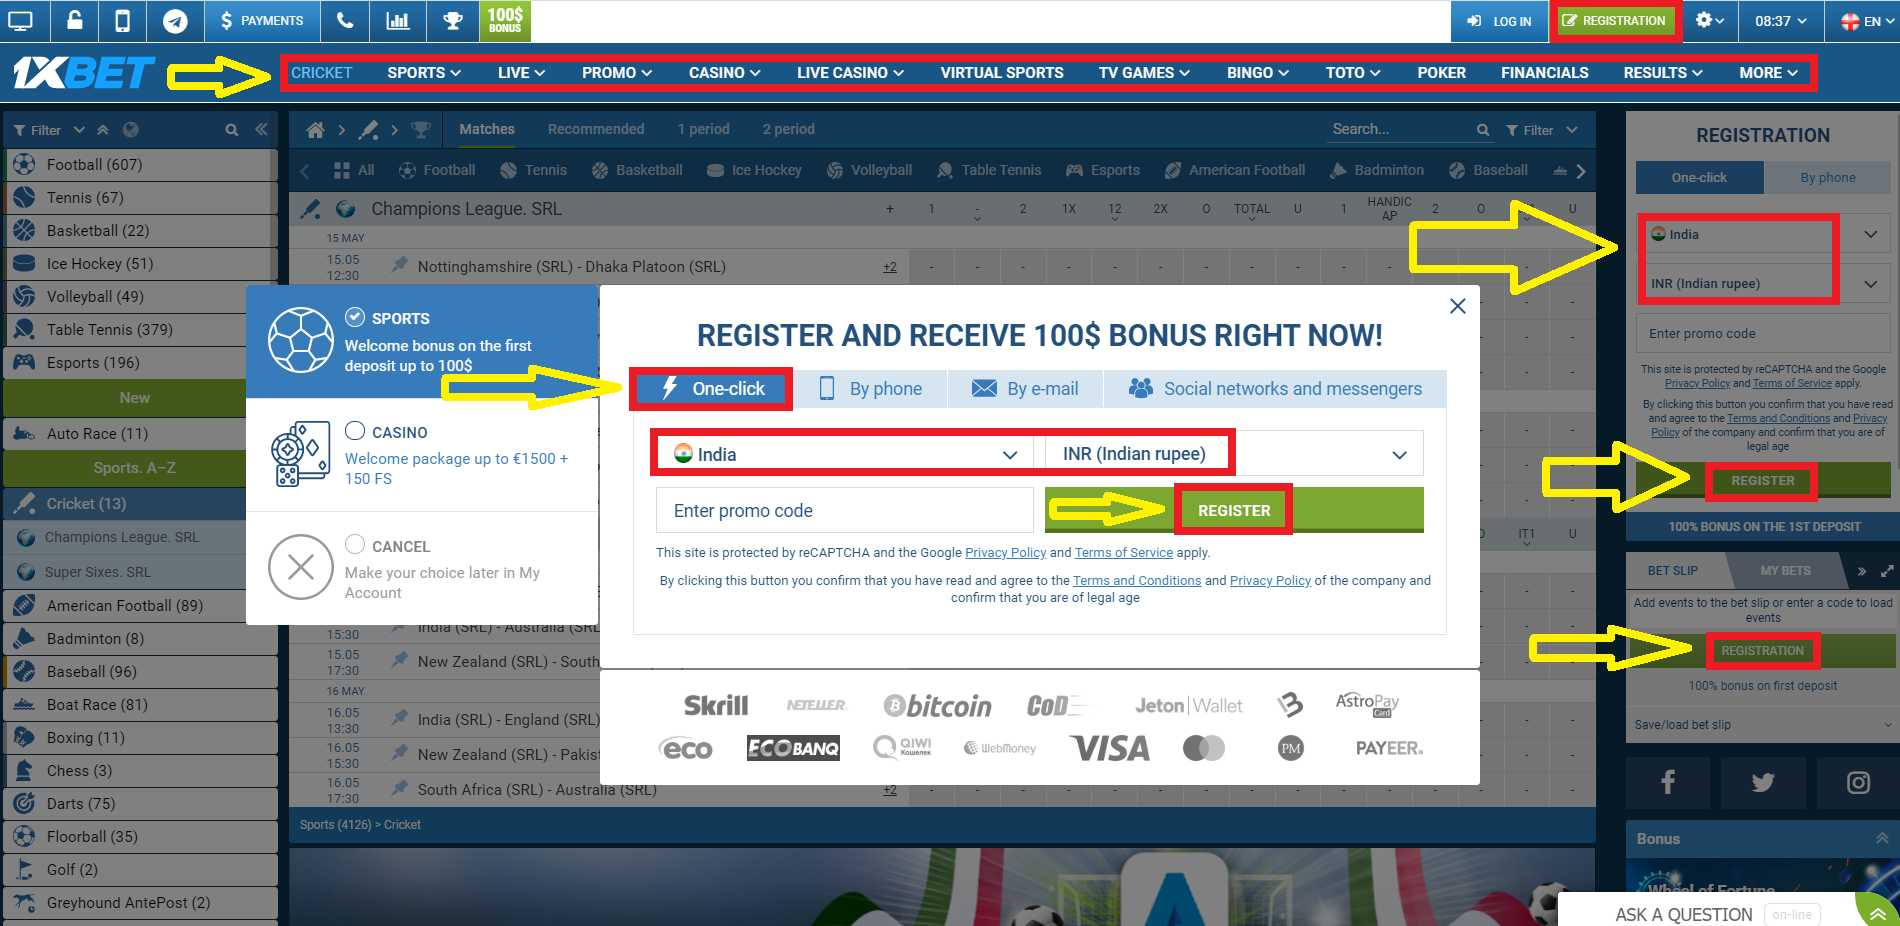 Guide for 1xBet registration and login.